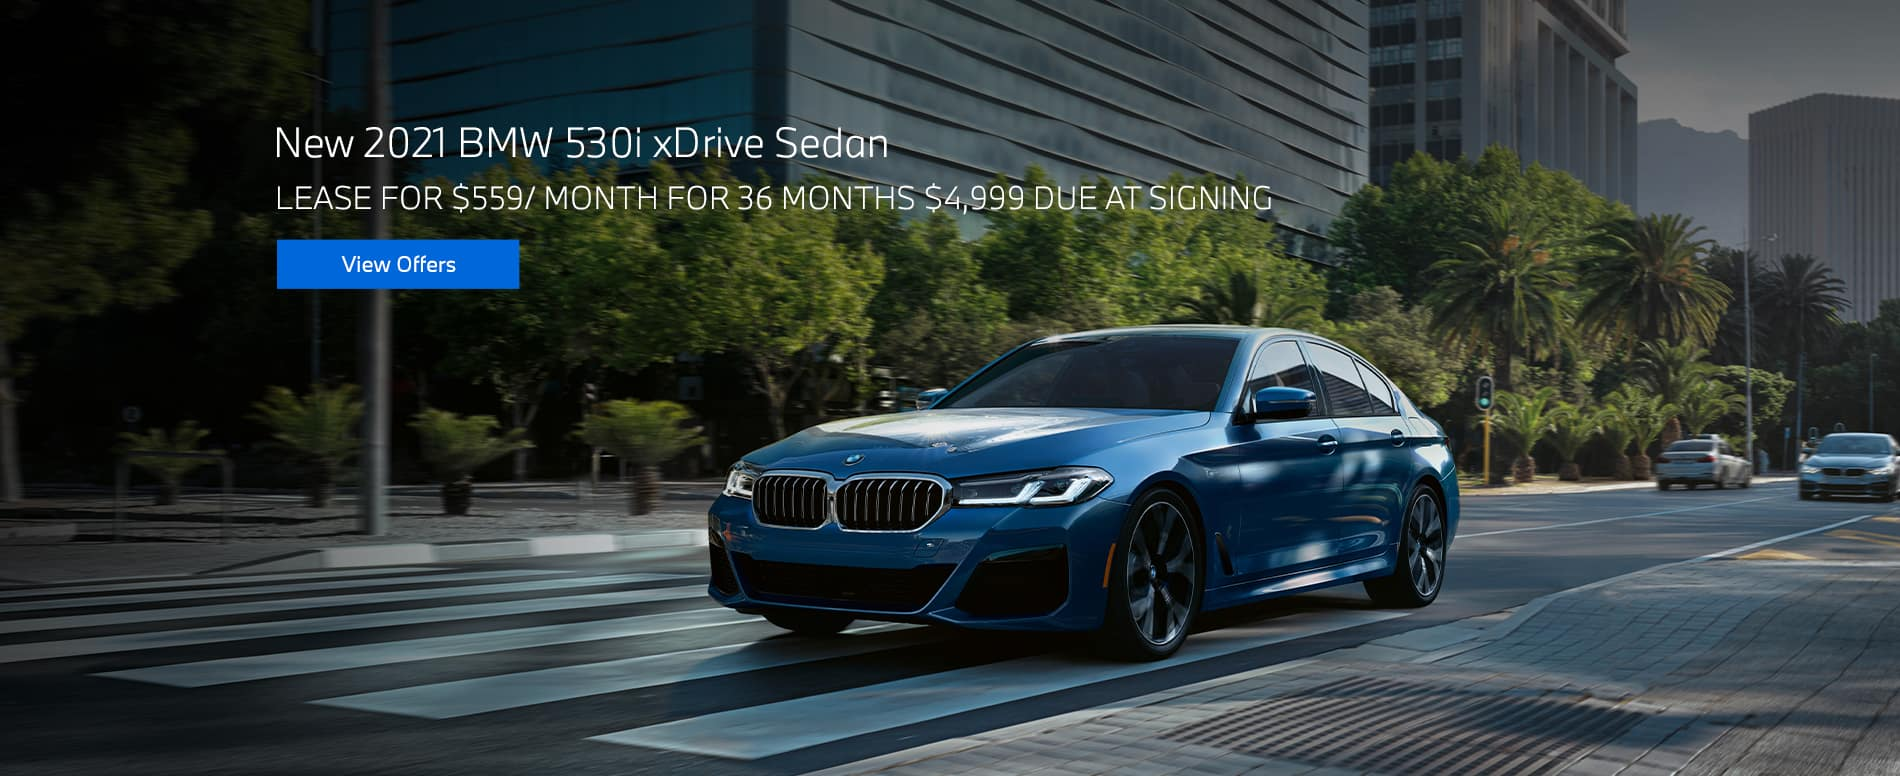 New 2021 BMW 530i xDrive Sedan $559/mo. for 36 months $4,999 due at signing